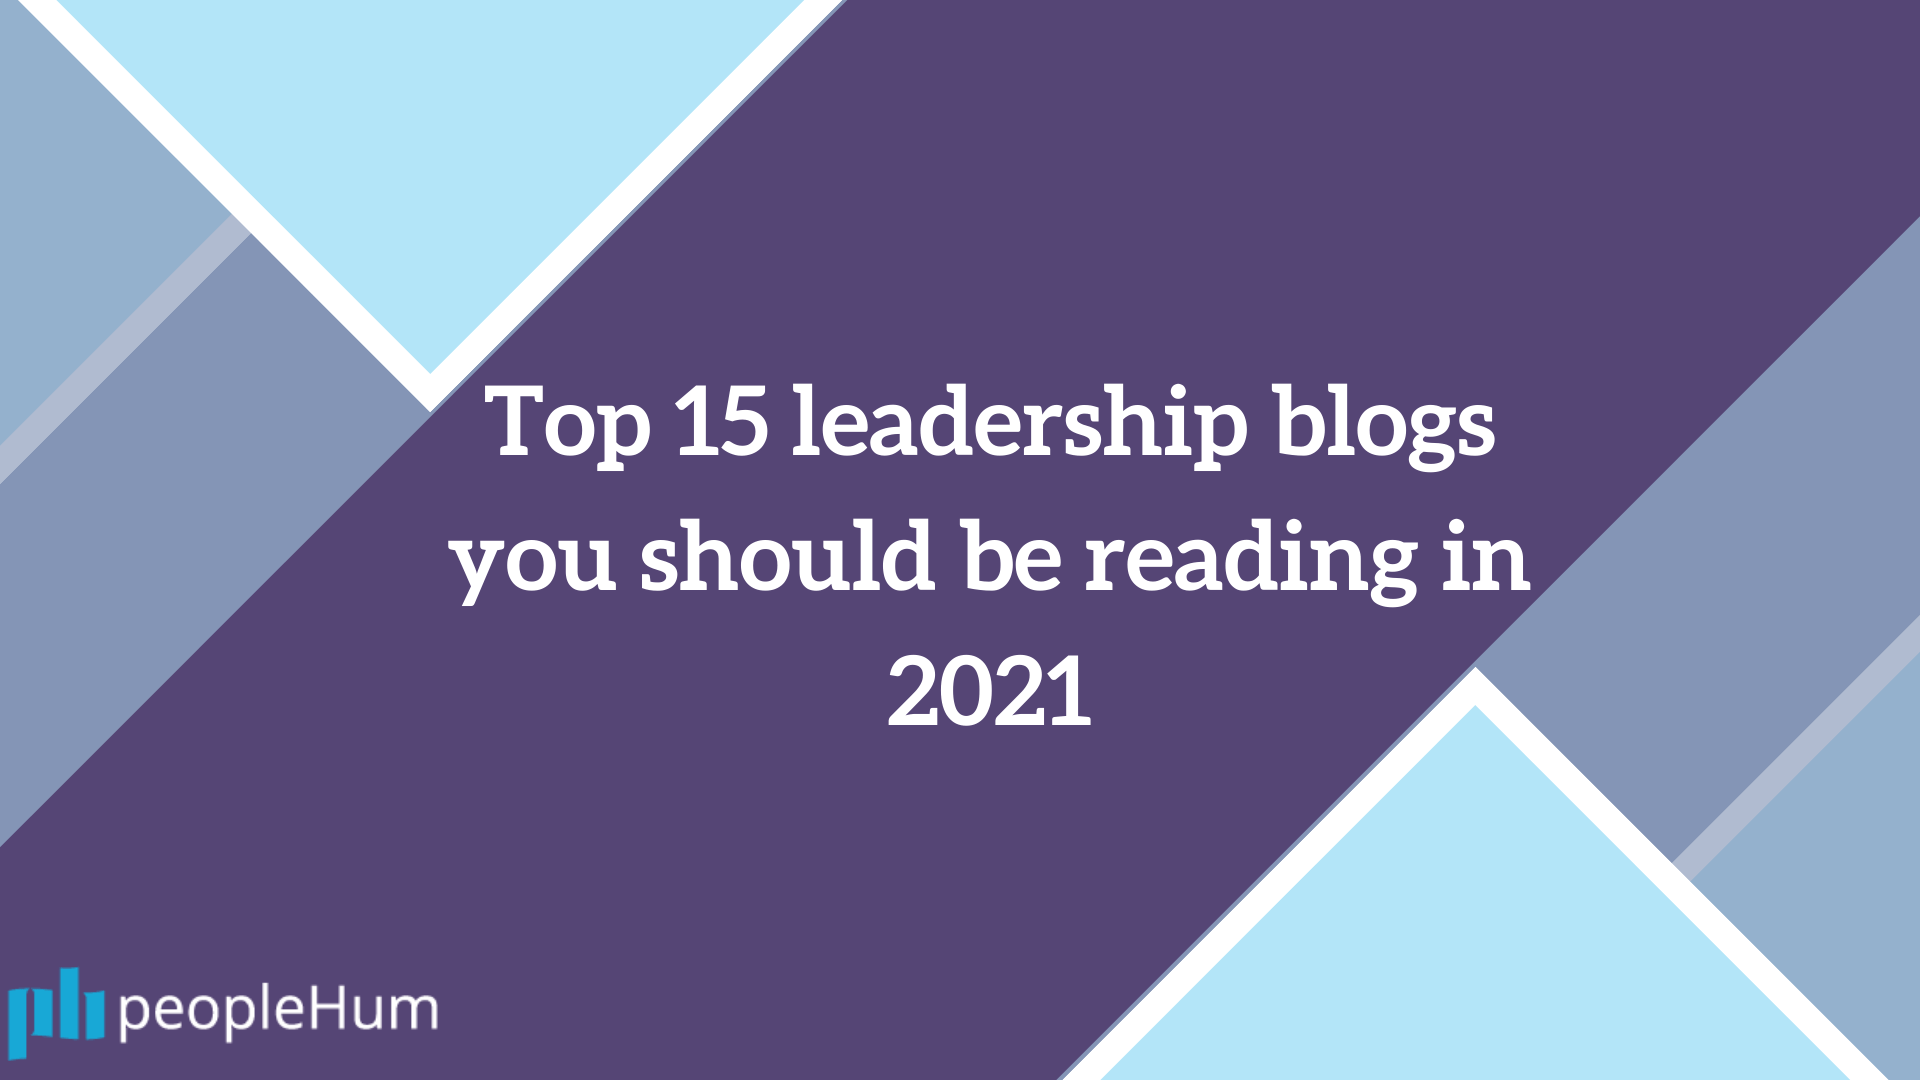 Top 15 leadership blogs you should be reading in 2021